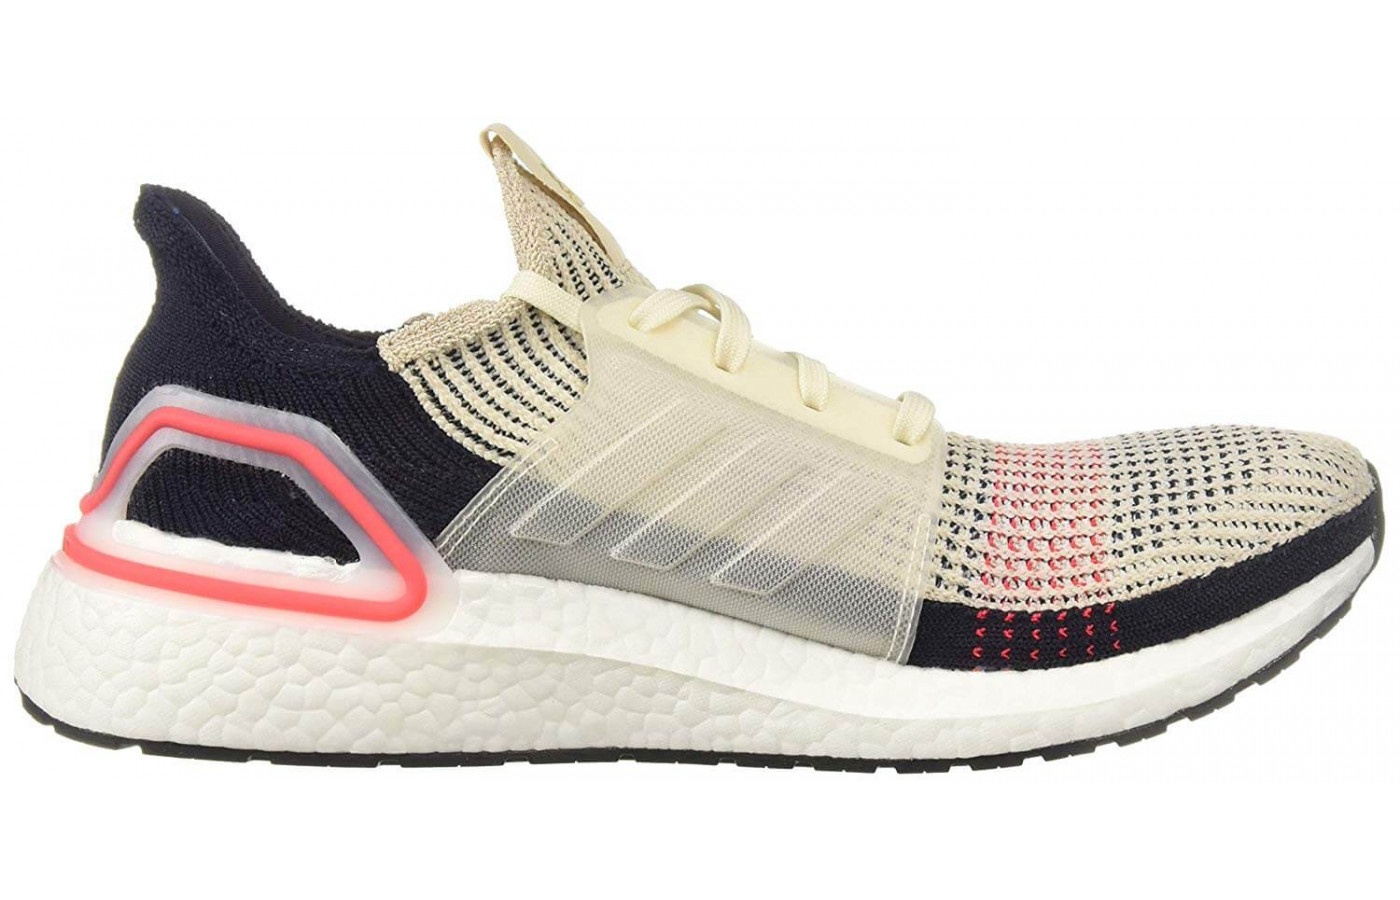 Adidas Ultraboost 19 side